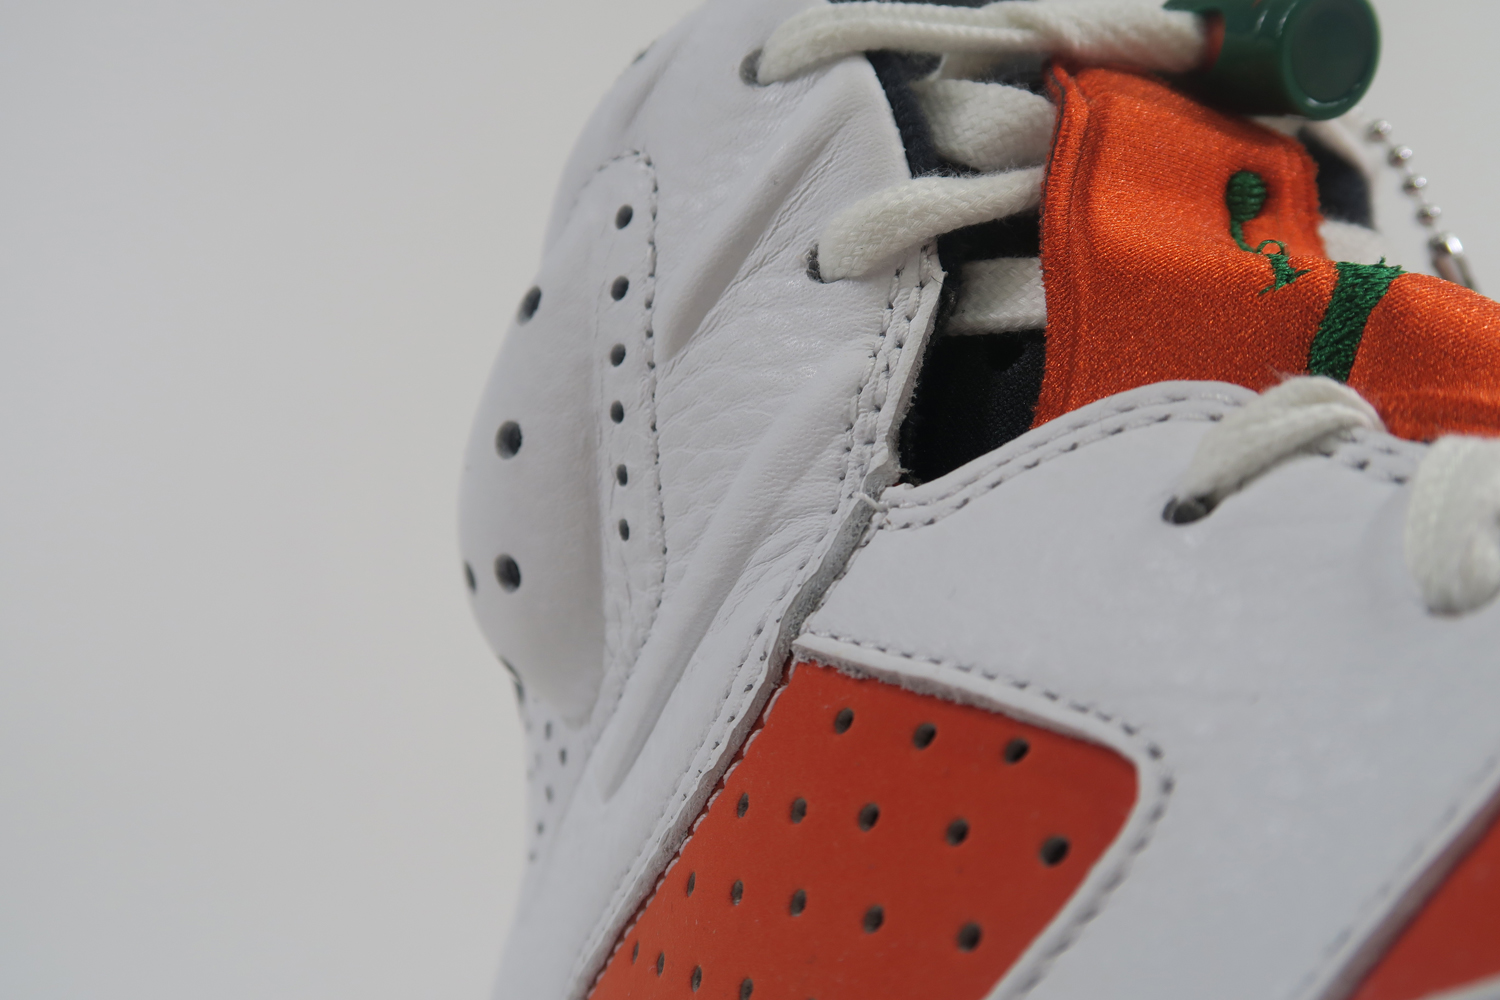 A Detailed Look at the Air Jordan 6 'Like Mike' - WearTesters